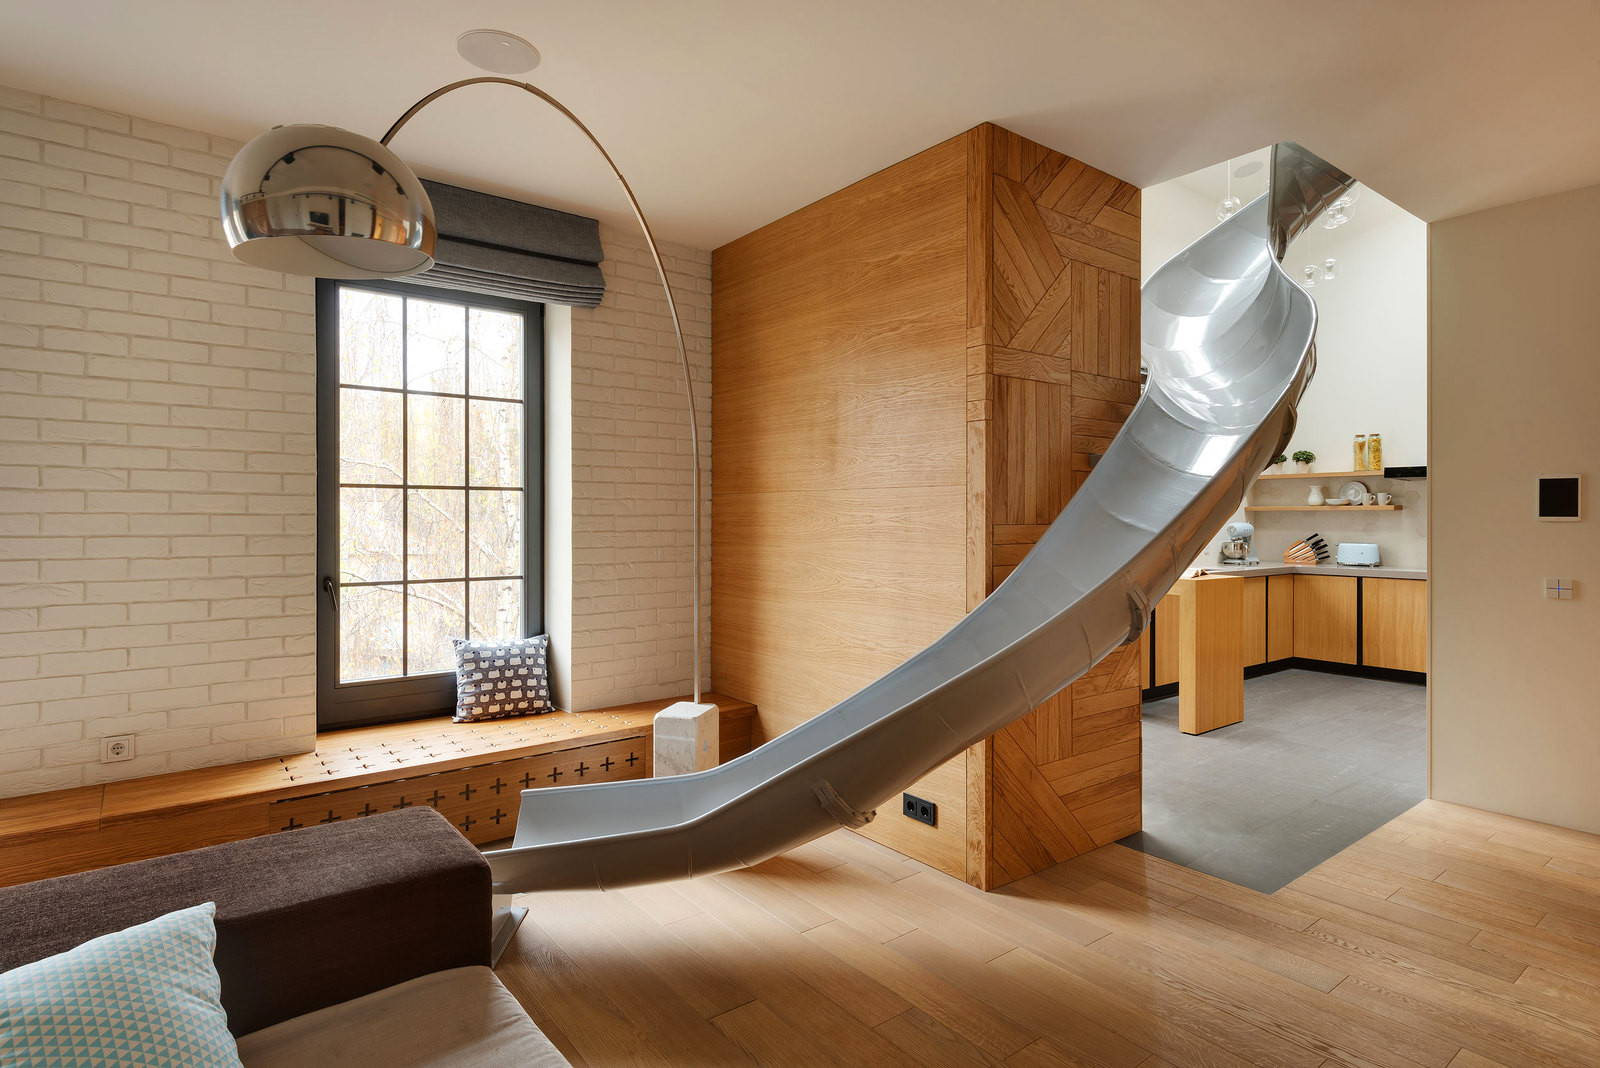 Apartment with a slide just3ds.com 10 - Sursă de inspirație: Case cu design ultra-original